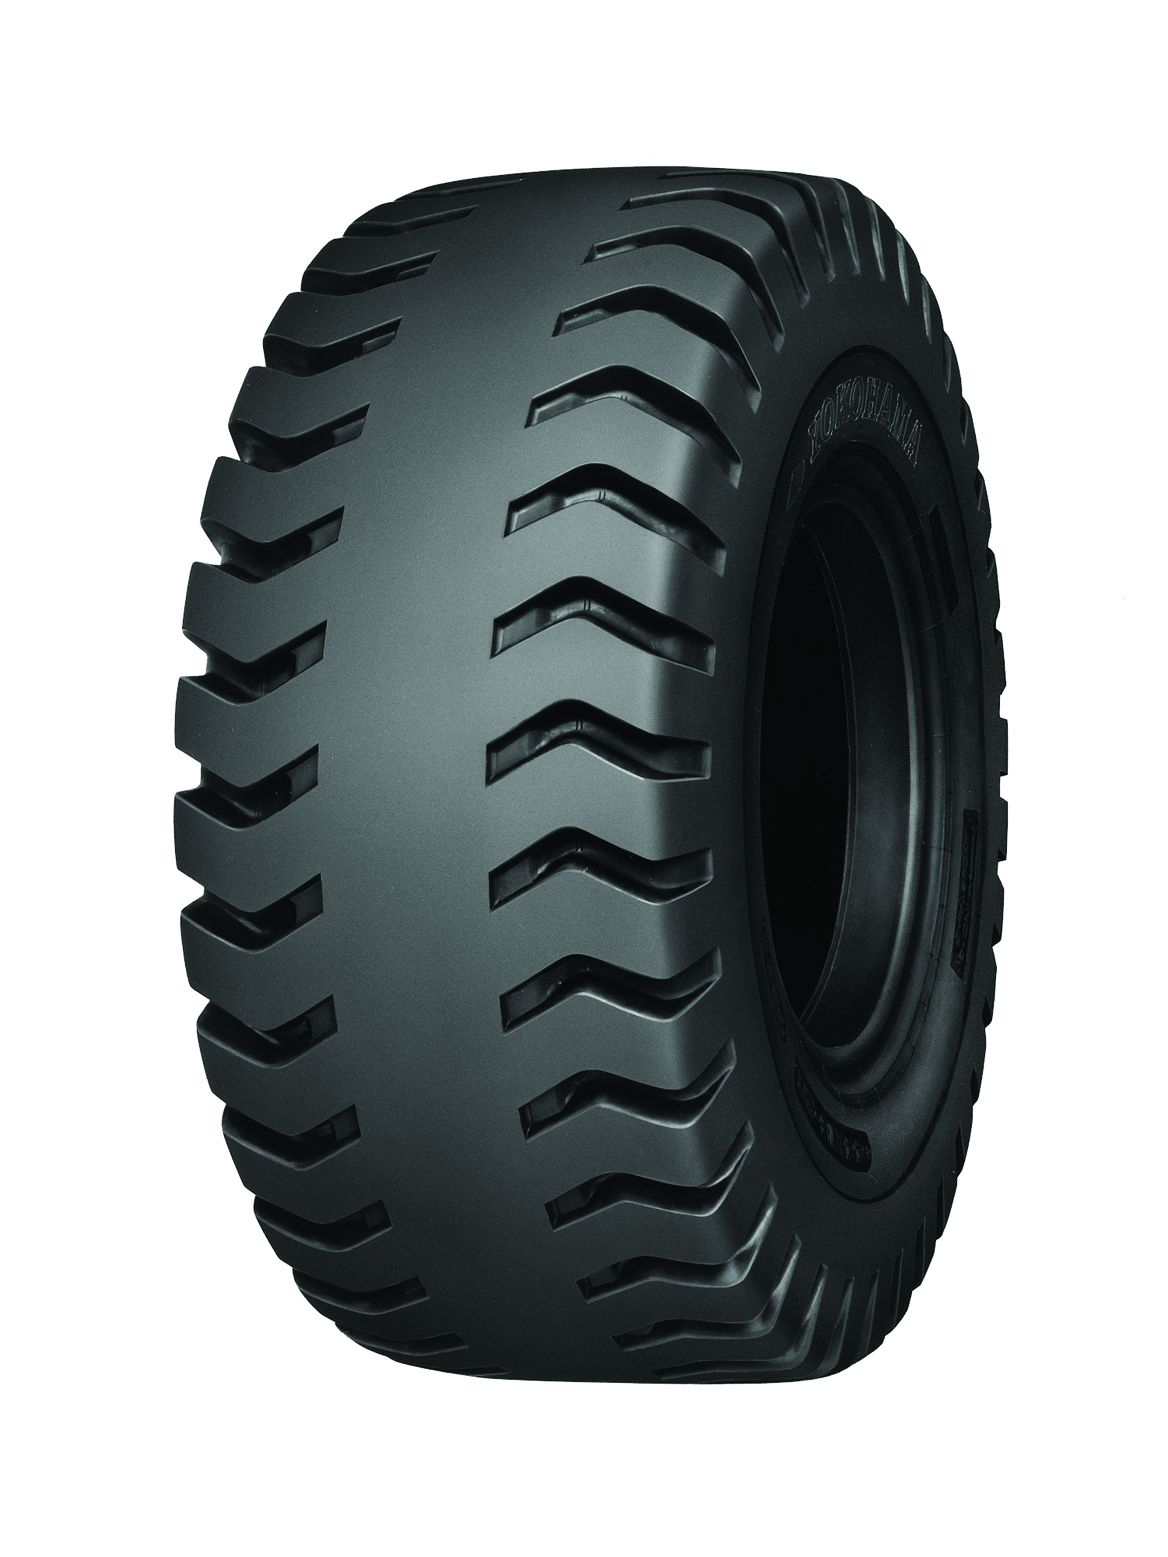 Yokohama Y20, Y67 Tires for Mining Operations